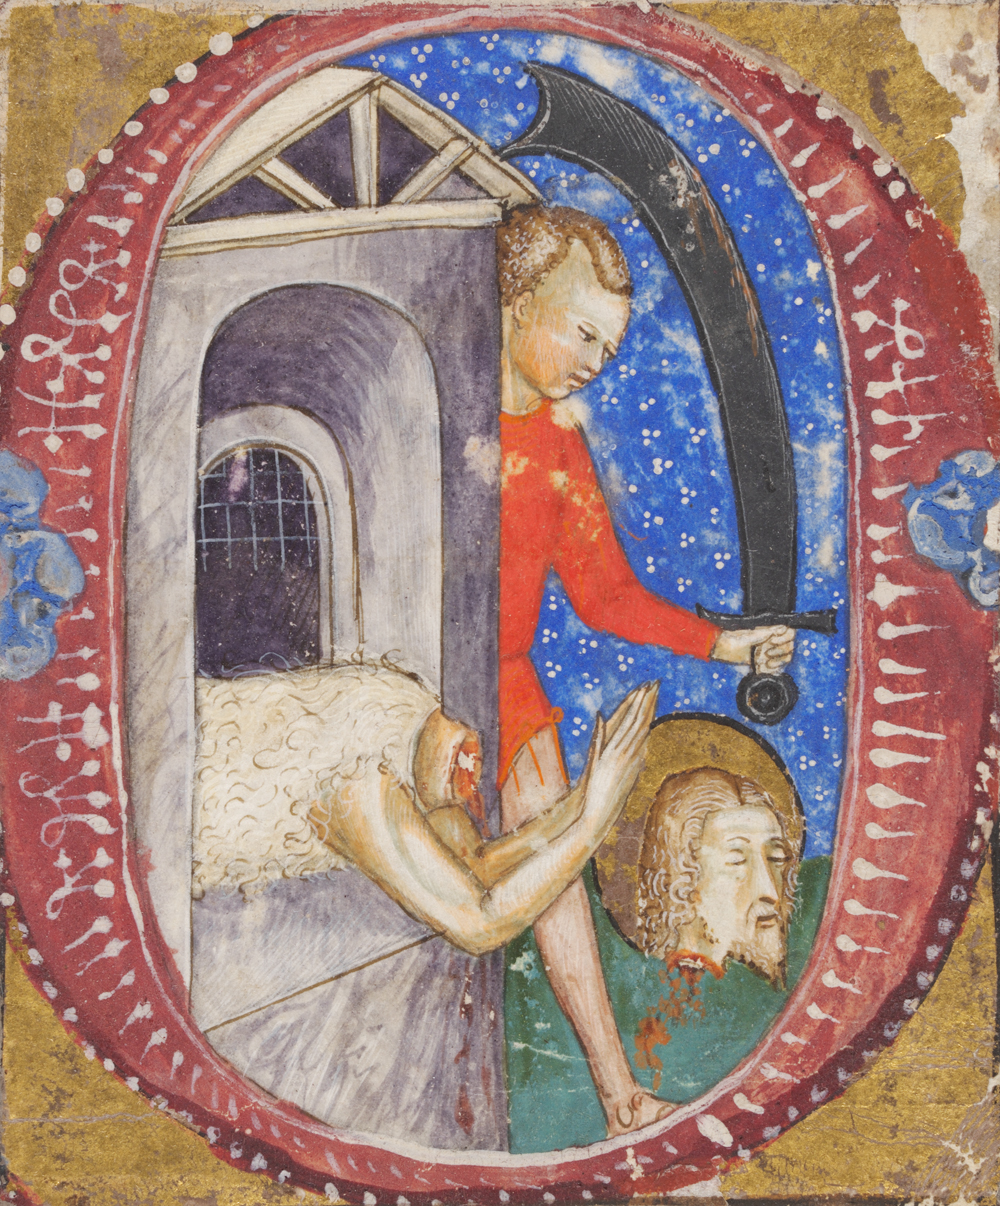 The Beheading of John the Baptist (detail), possibly by Tomasino da Vimercate, about 1410